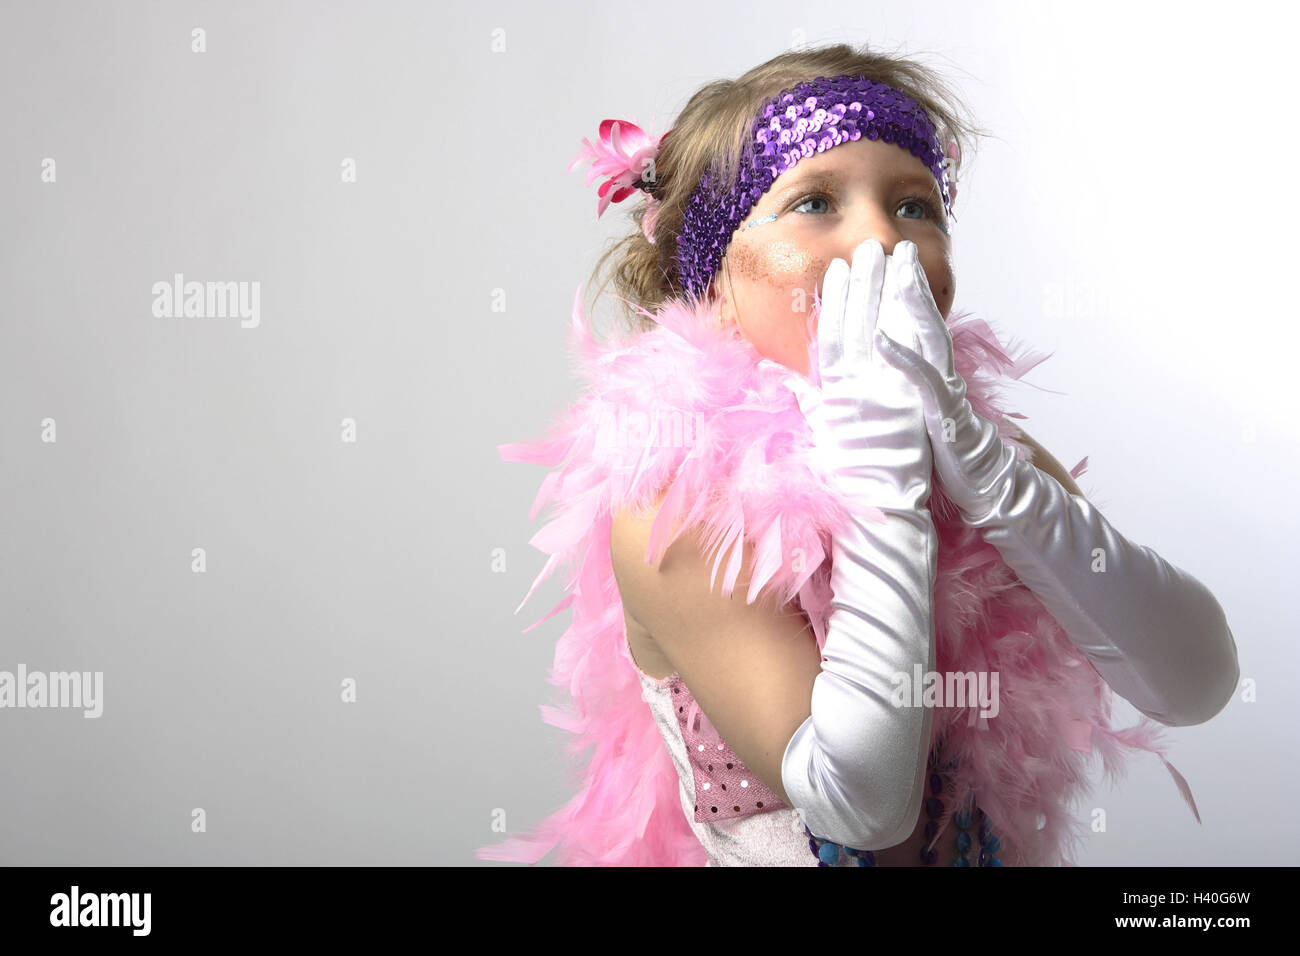 Girls Disguise Saloonlady Feather Boa Pink Gesture Portrait